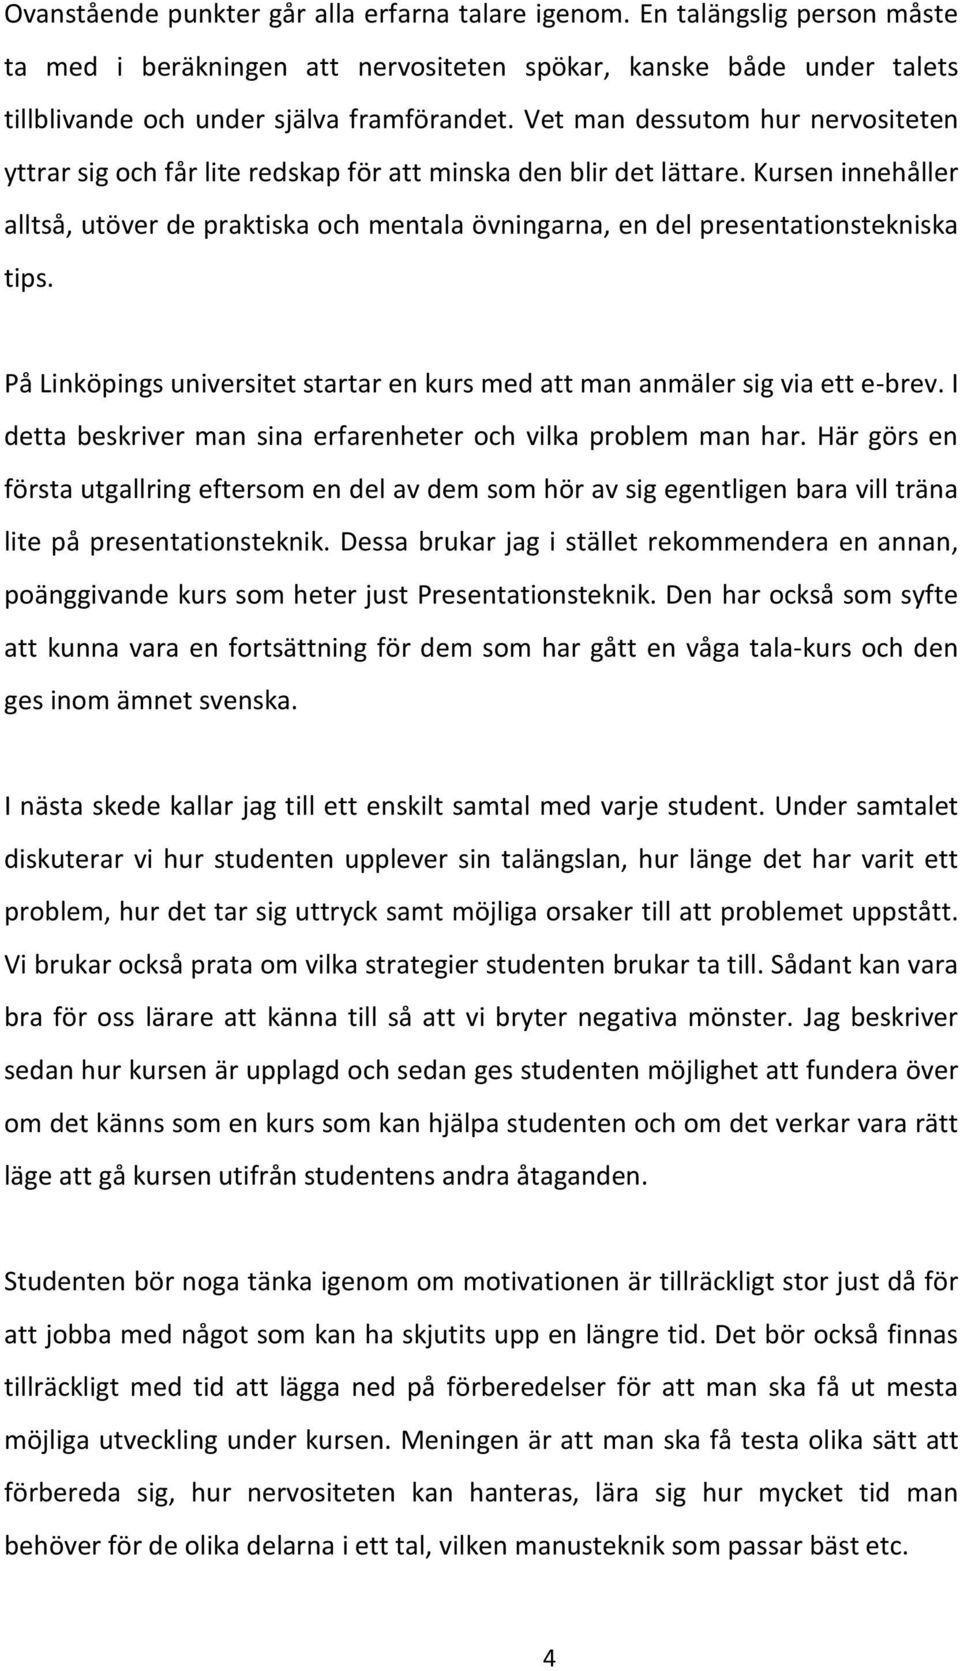 Dejta min universitets adjunkt